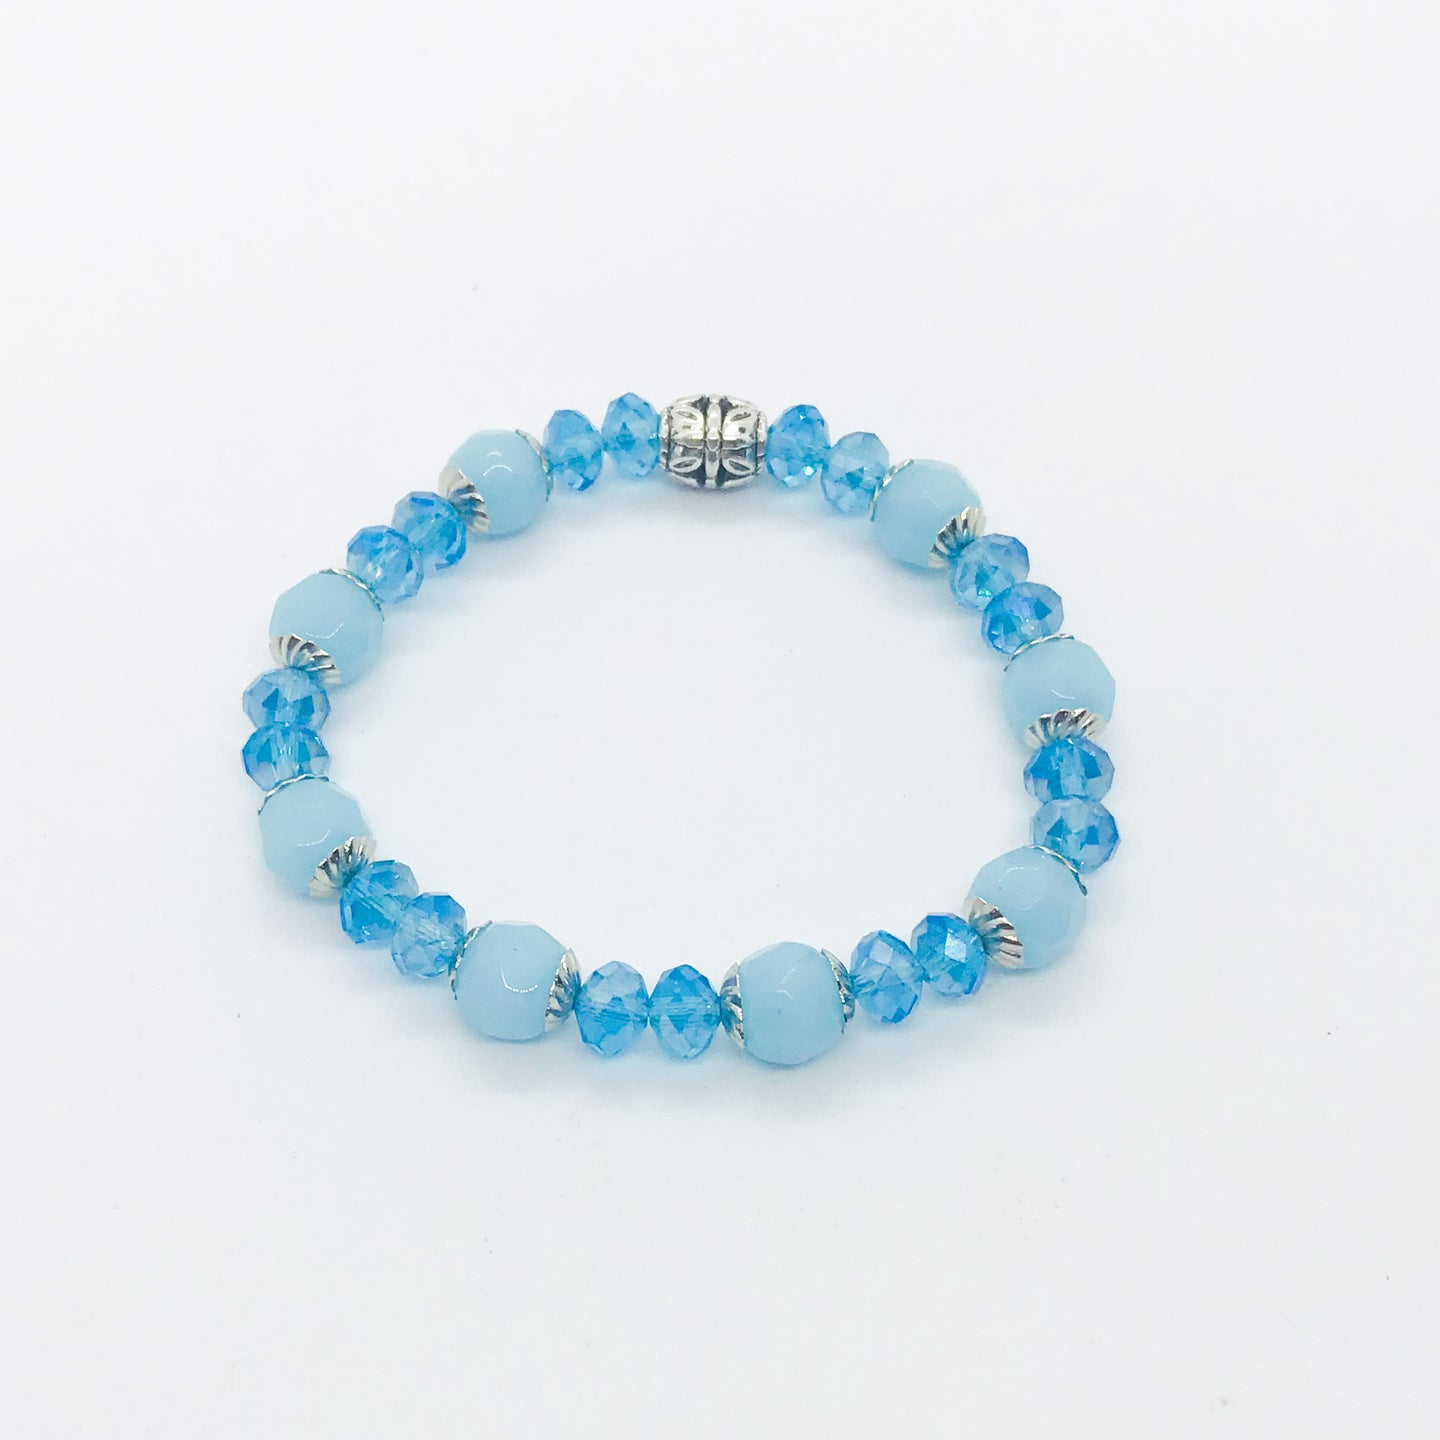 Glass Bead Stretchy Bracelet - B703